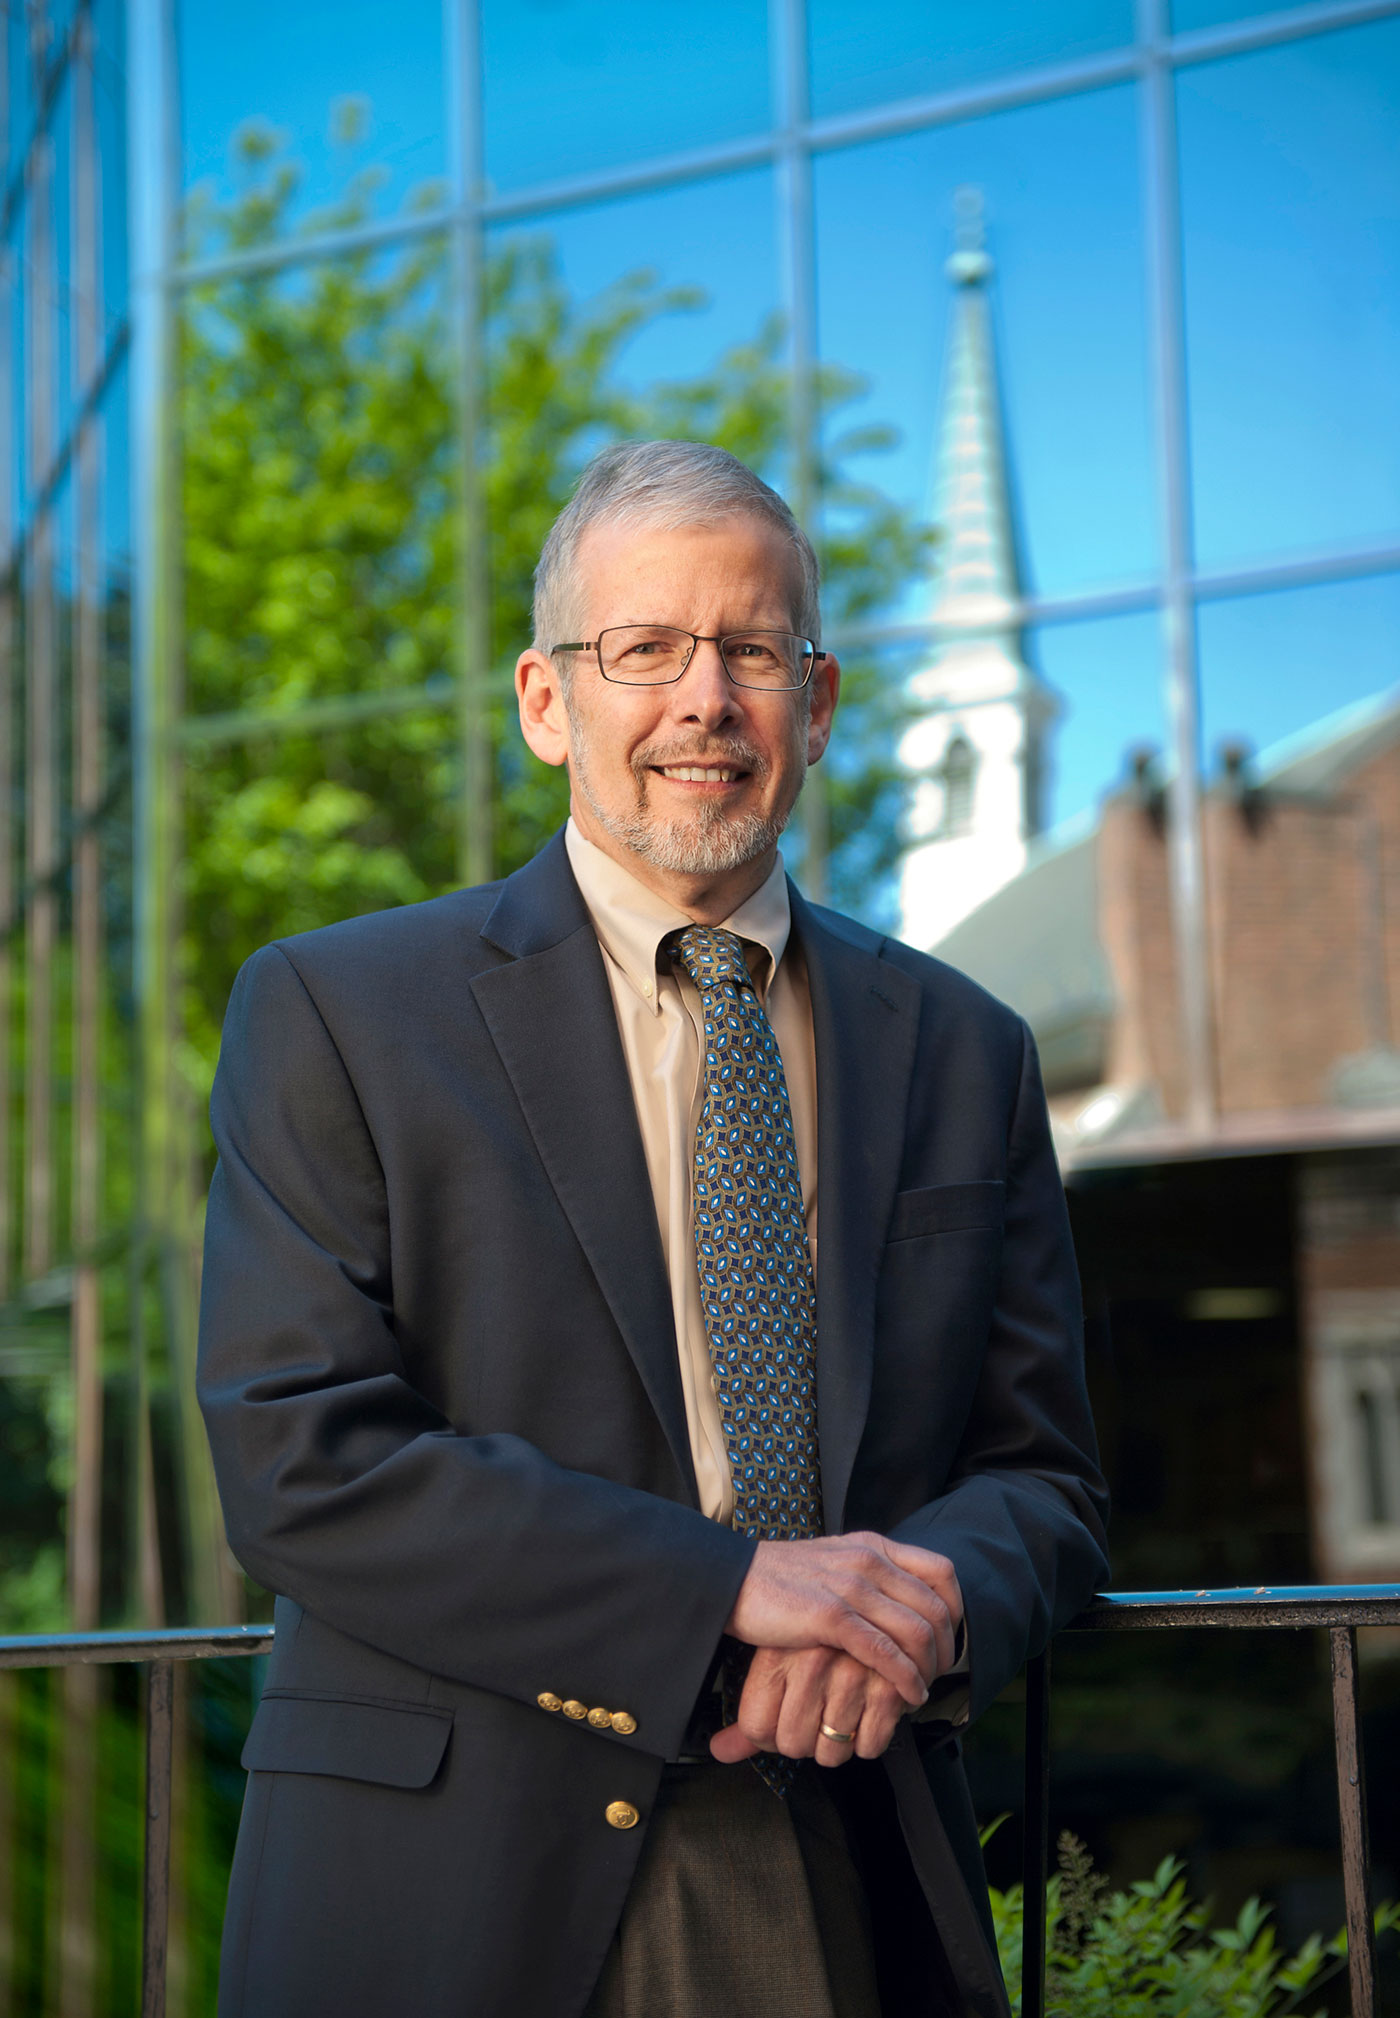 School of Divinity faculty member Gary Gunderson